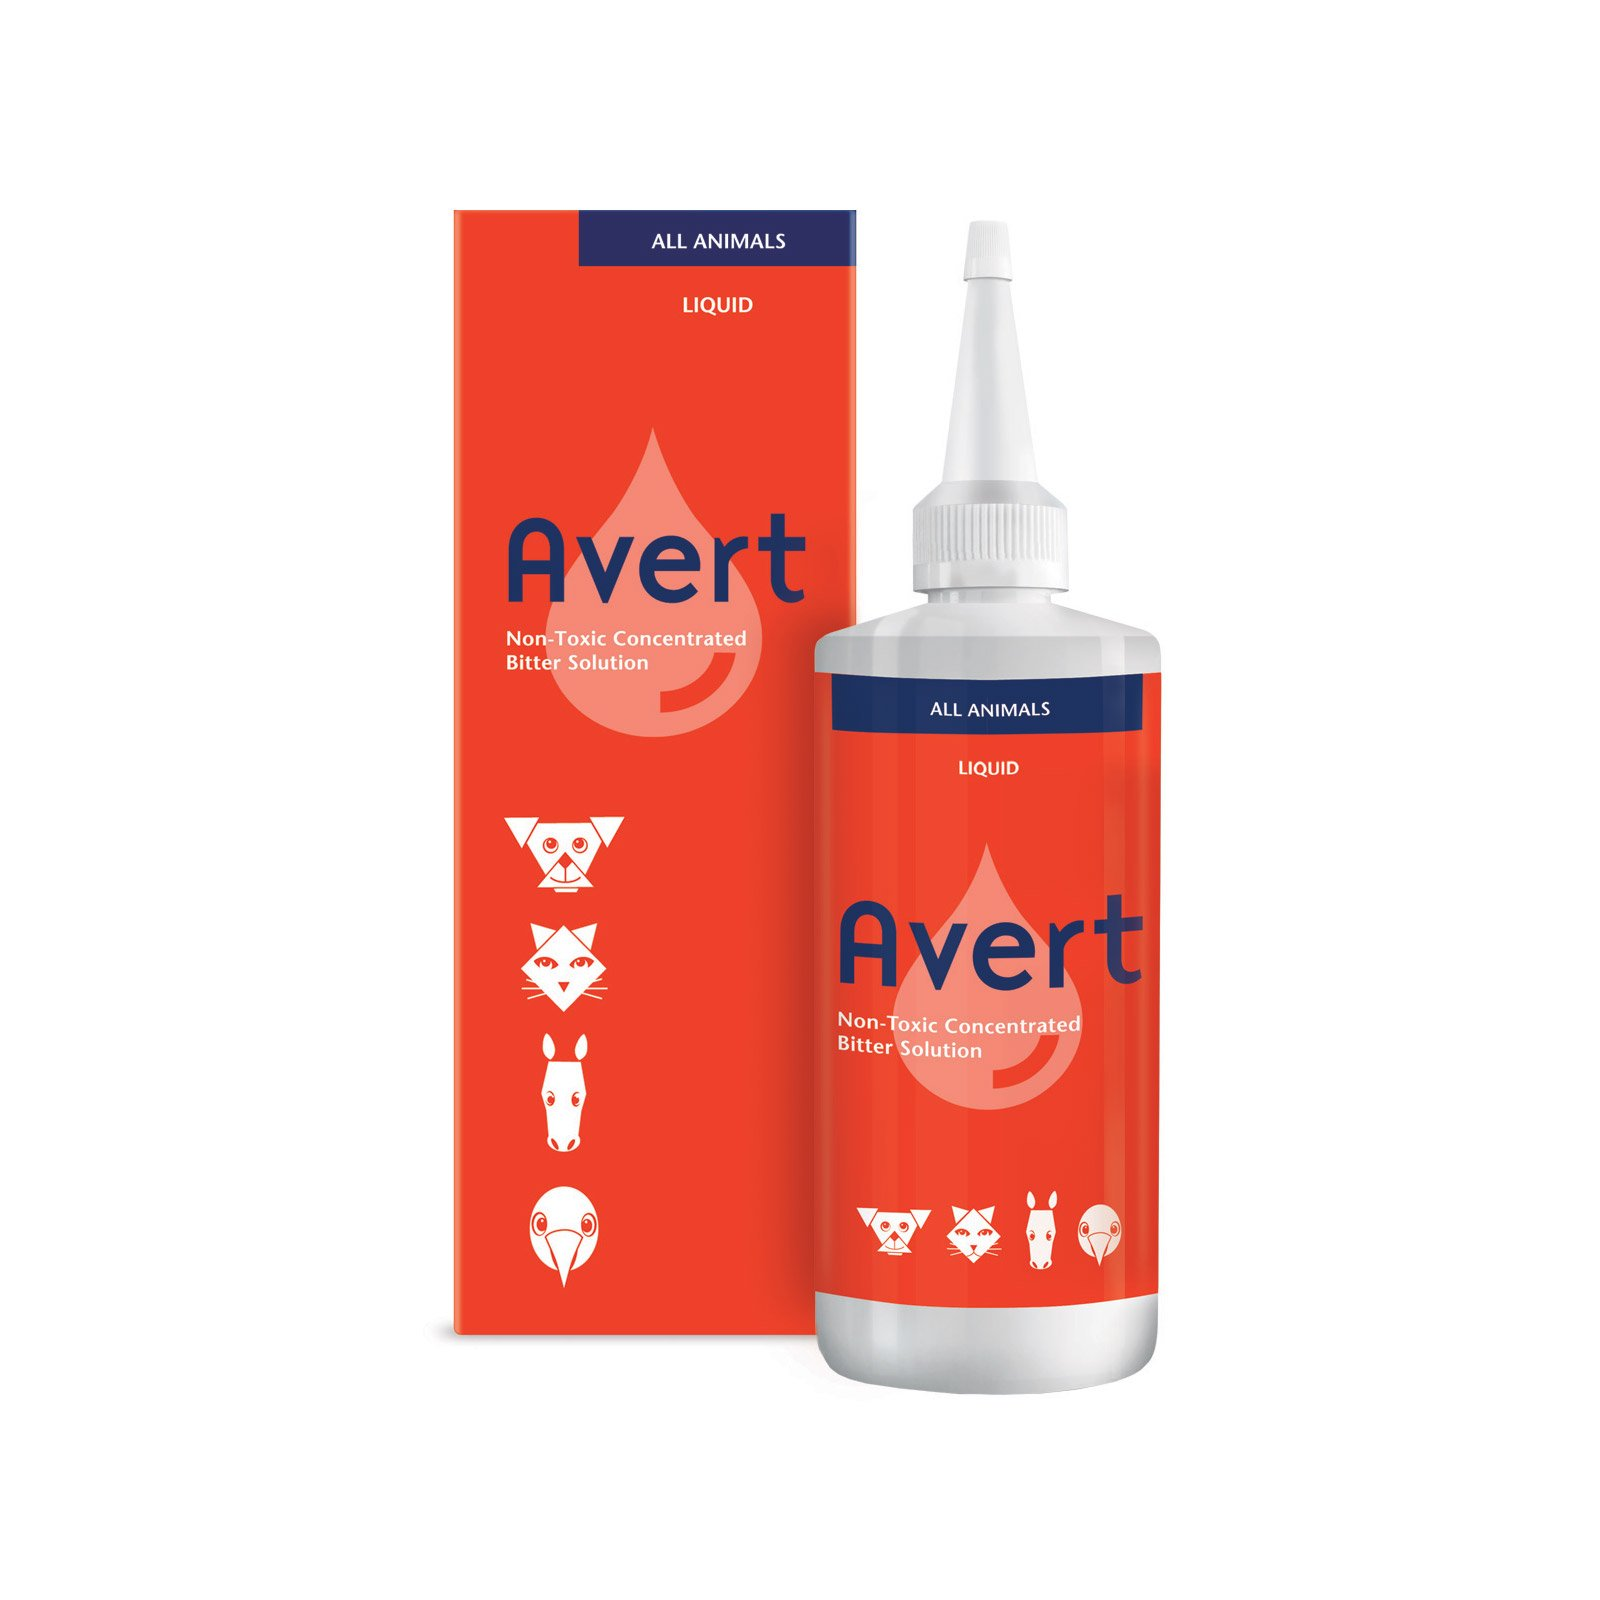 Avert Bitter Solution for Dogs & Cats